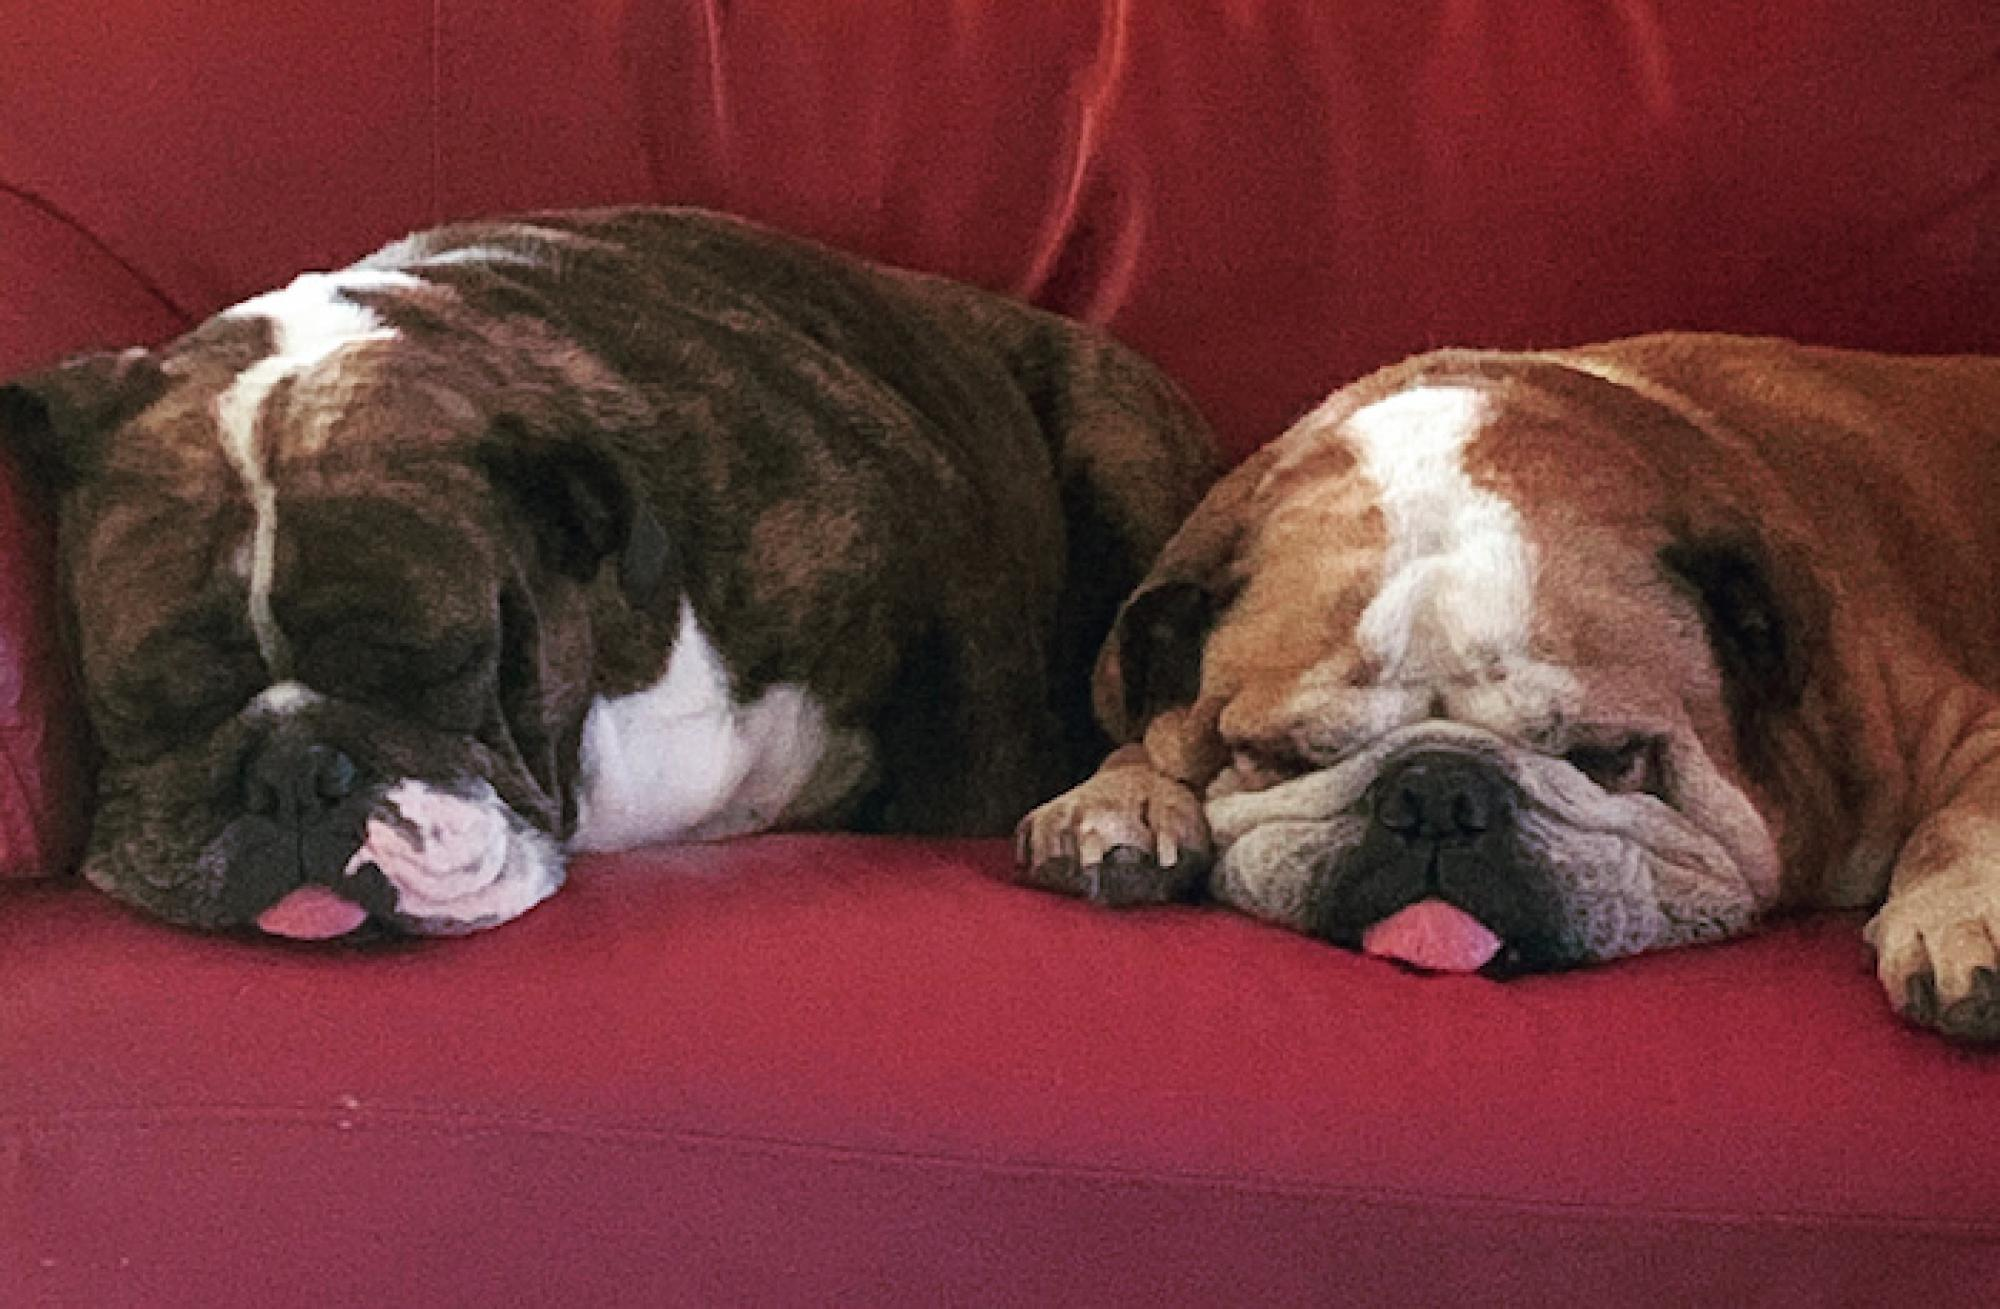 Two of my co-workers, English bulldogs Scarlett and Nigel, asleep on the job. – Jessica Stephens, marketing specialist at Arizona Public Media